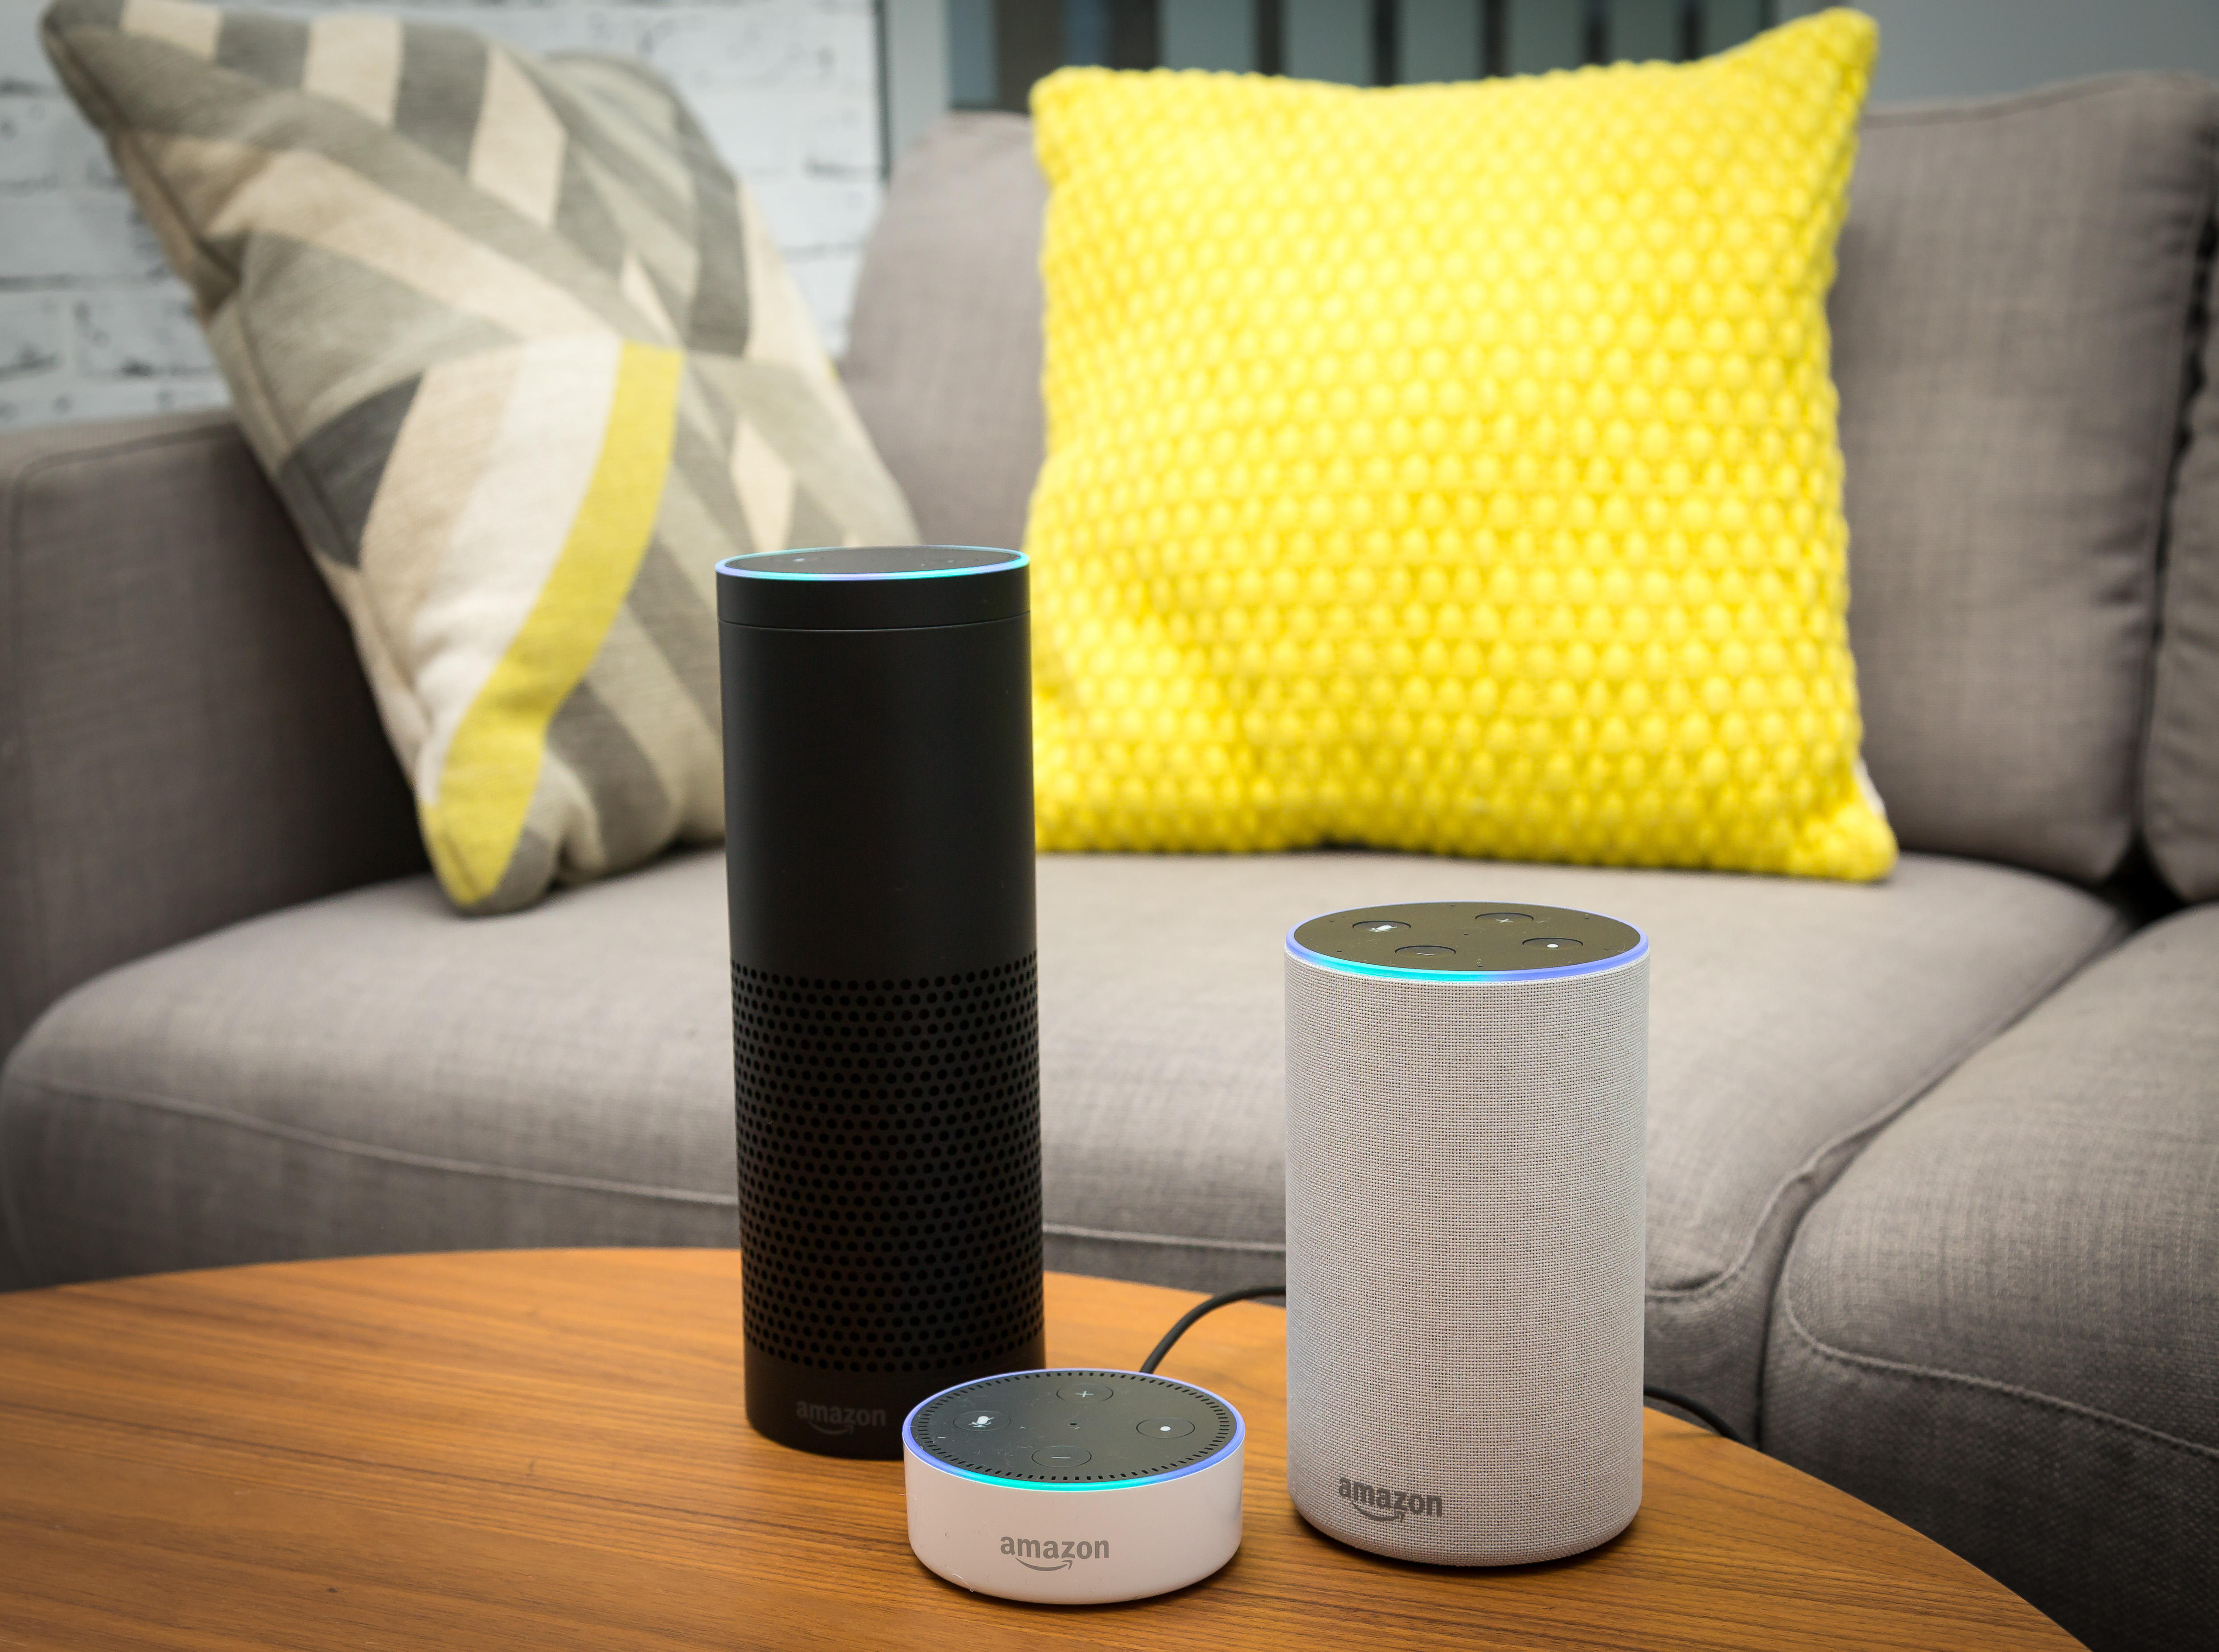 8 frustrating Amazon Echo problems with easy solutions - CNET